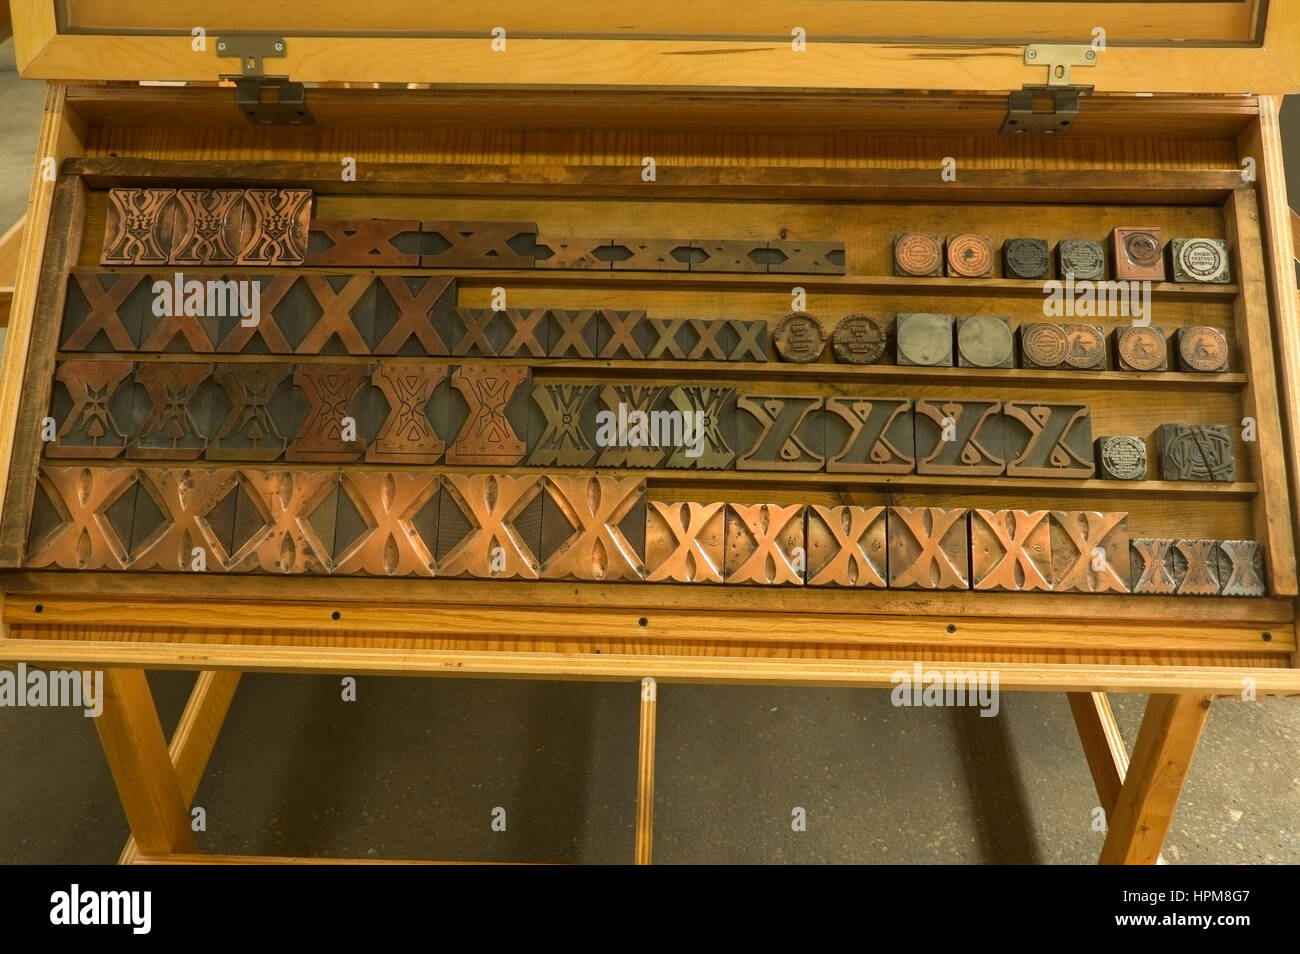 Antique metal and wood decorative printing blocks, on display at Hamilton Wood Type and Printing Museum, Two Rivers, - Stock Image